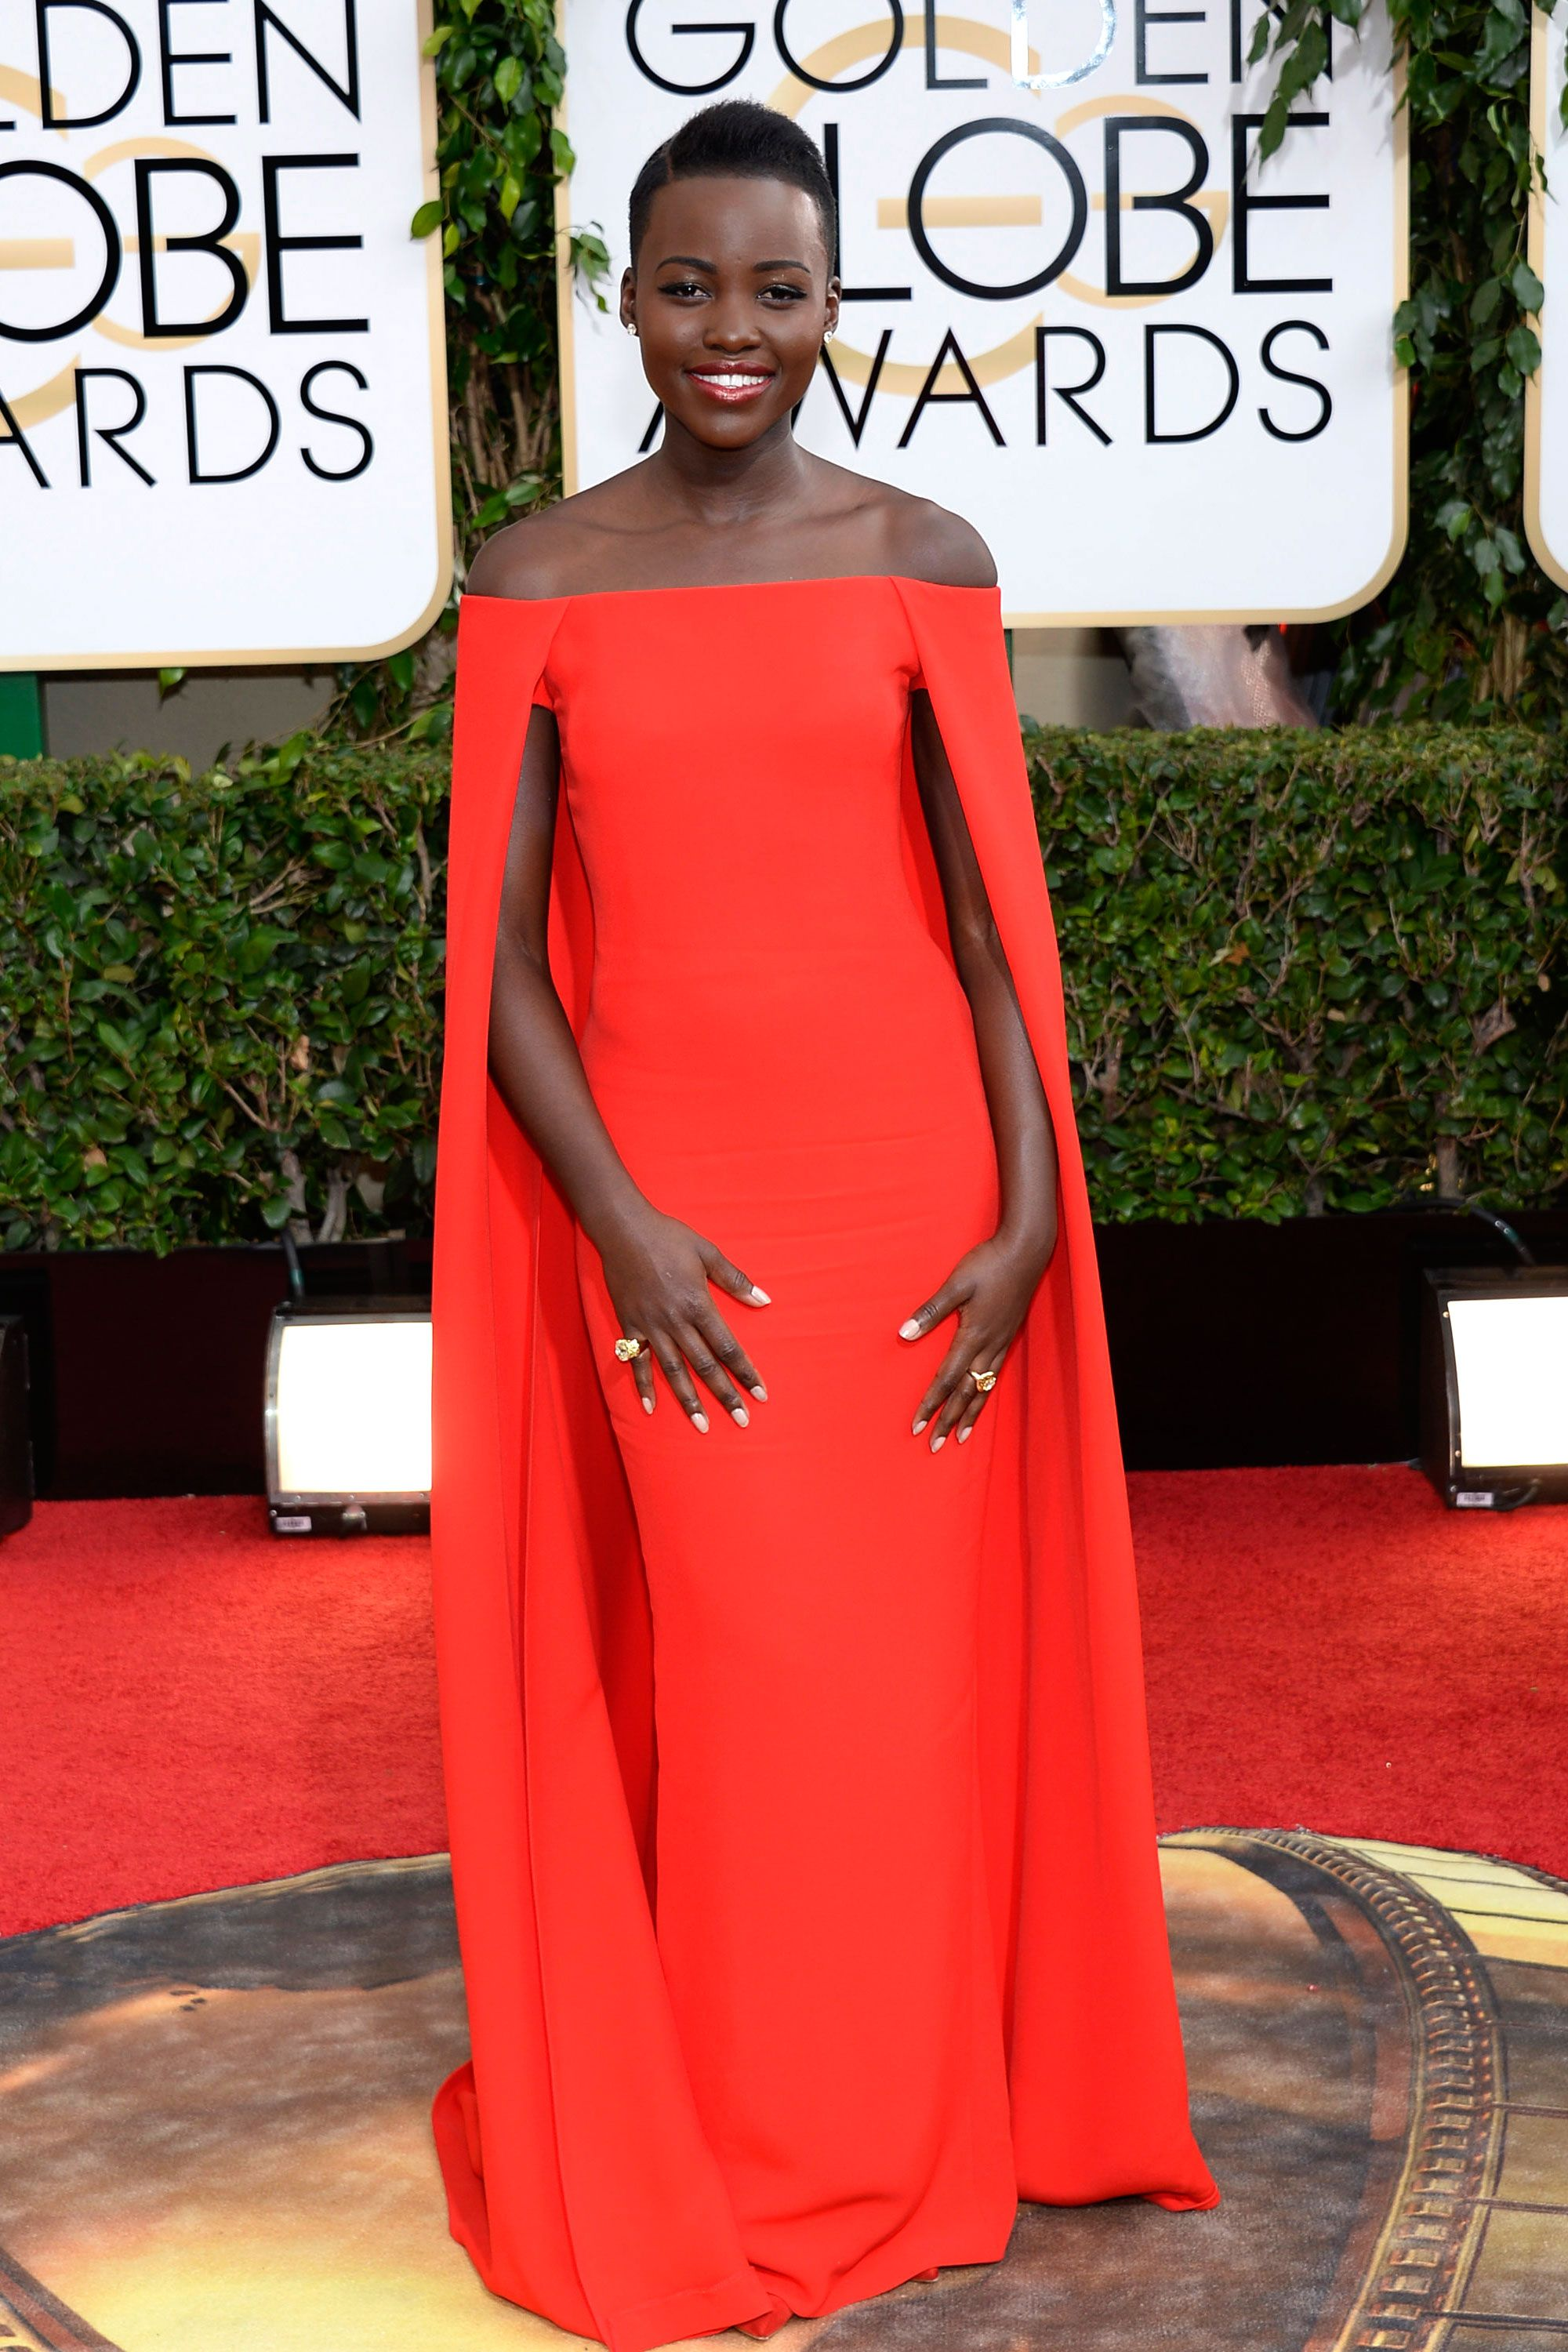 Lupita N'yongo. Absolutely stunning Ralph Lauren gown on an incredibly beautiful woman.  I would normally want to see jewels, but she is perfect with just diamond studs, anything else would detract from the architecture of the dress.